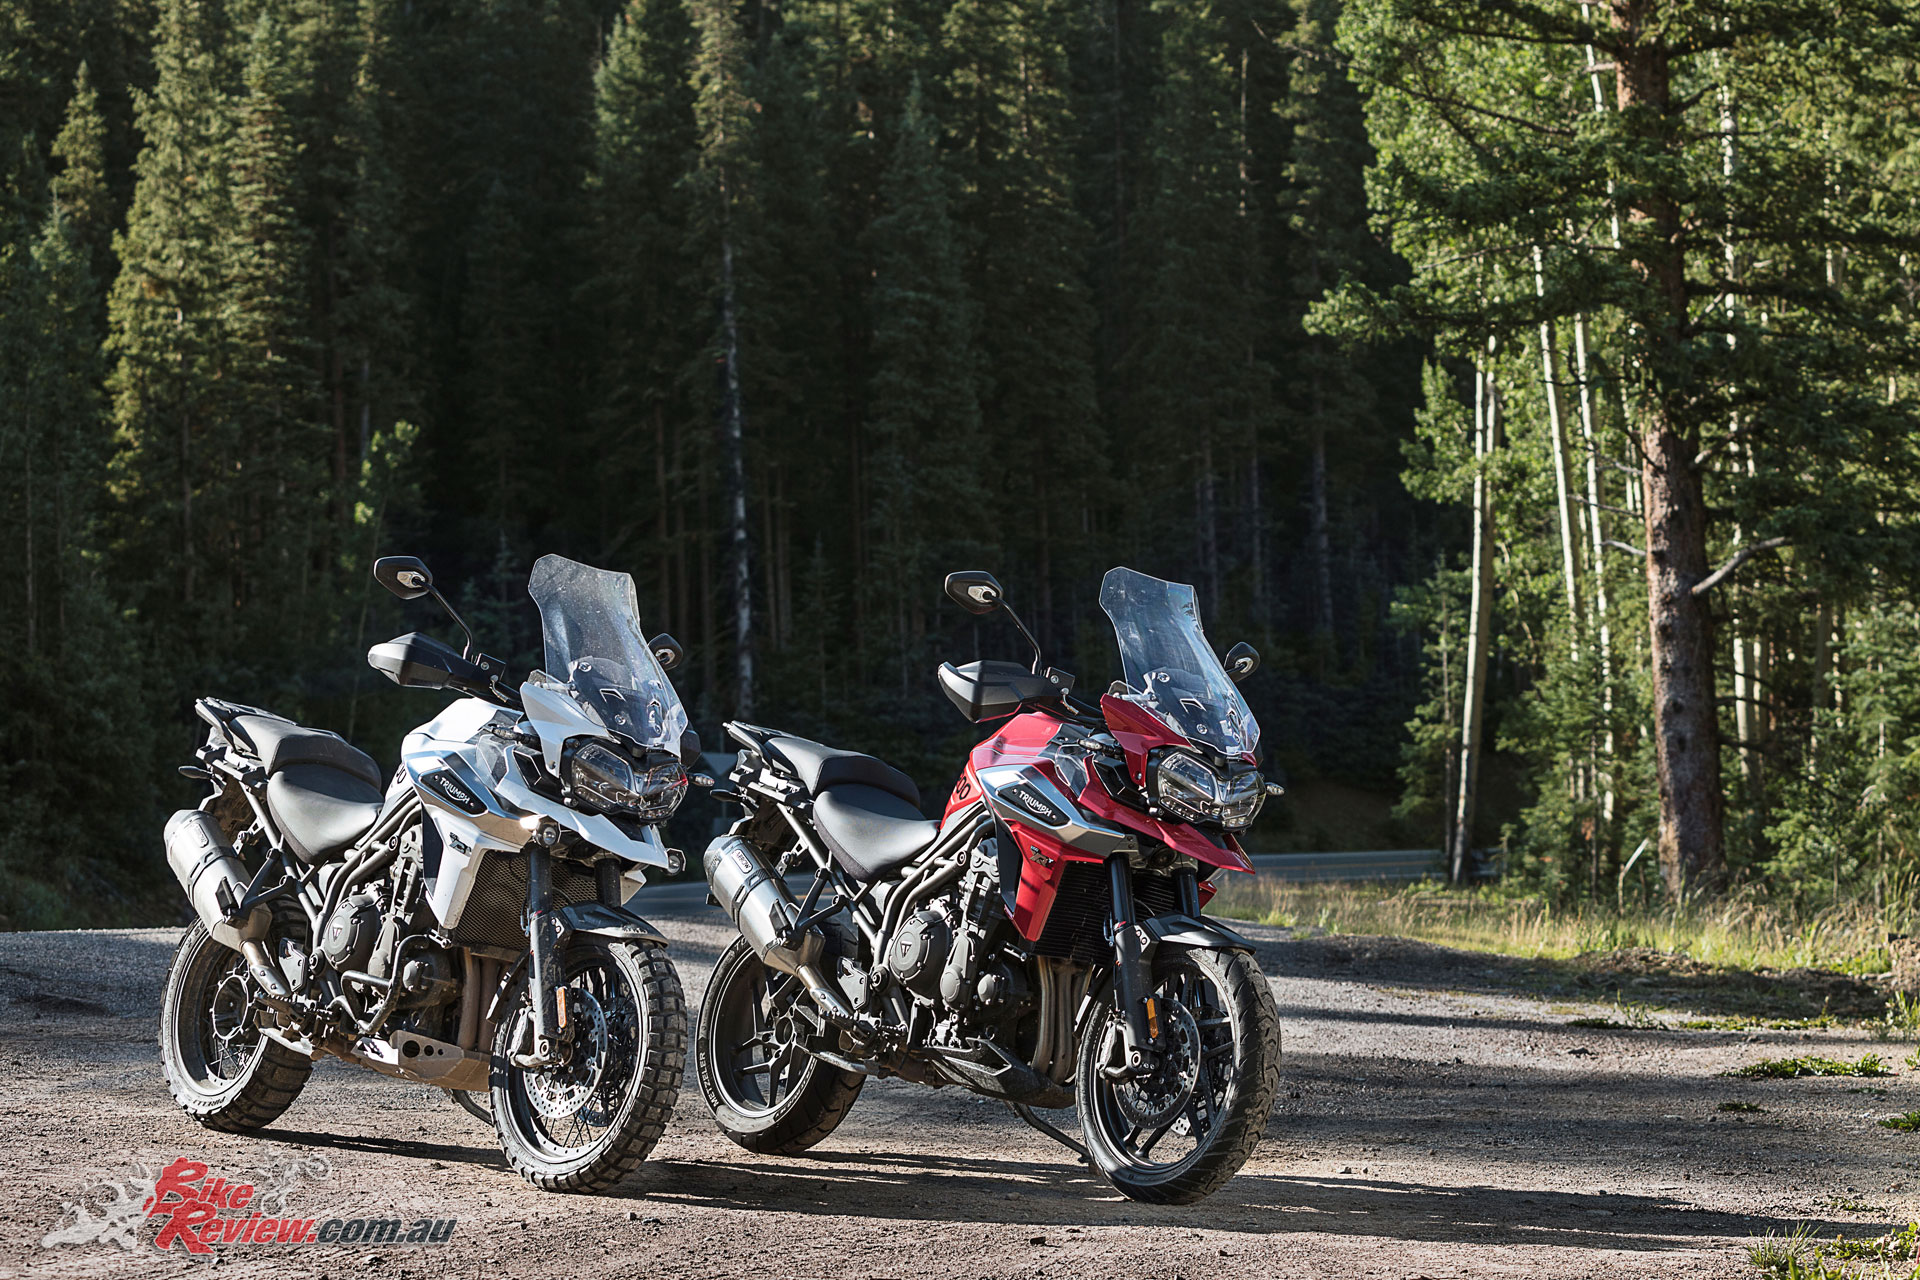 2018 Triumph Tiger 1200 XCA and XR